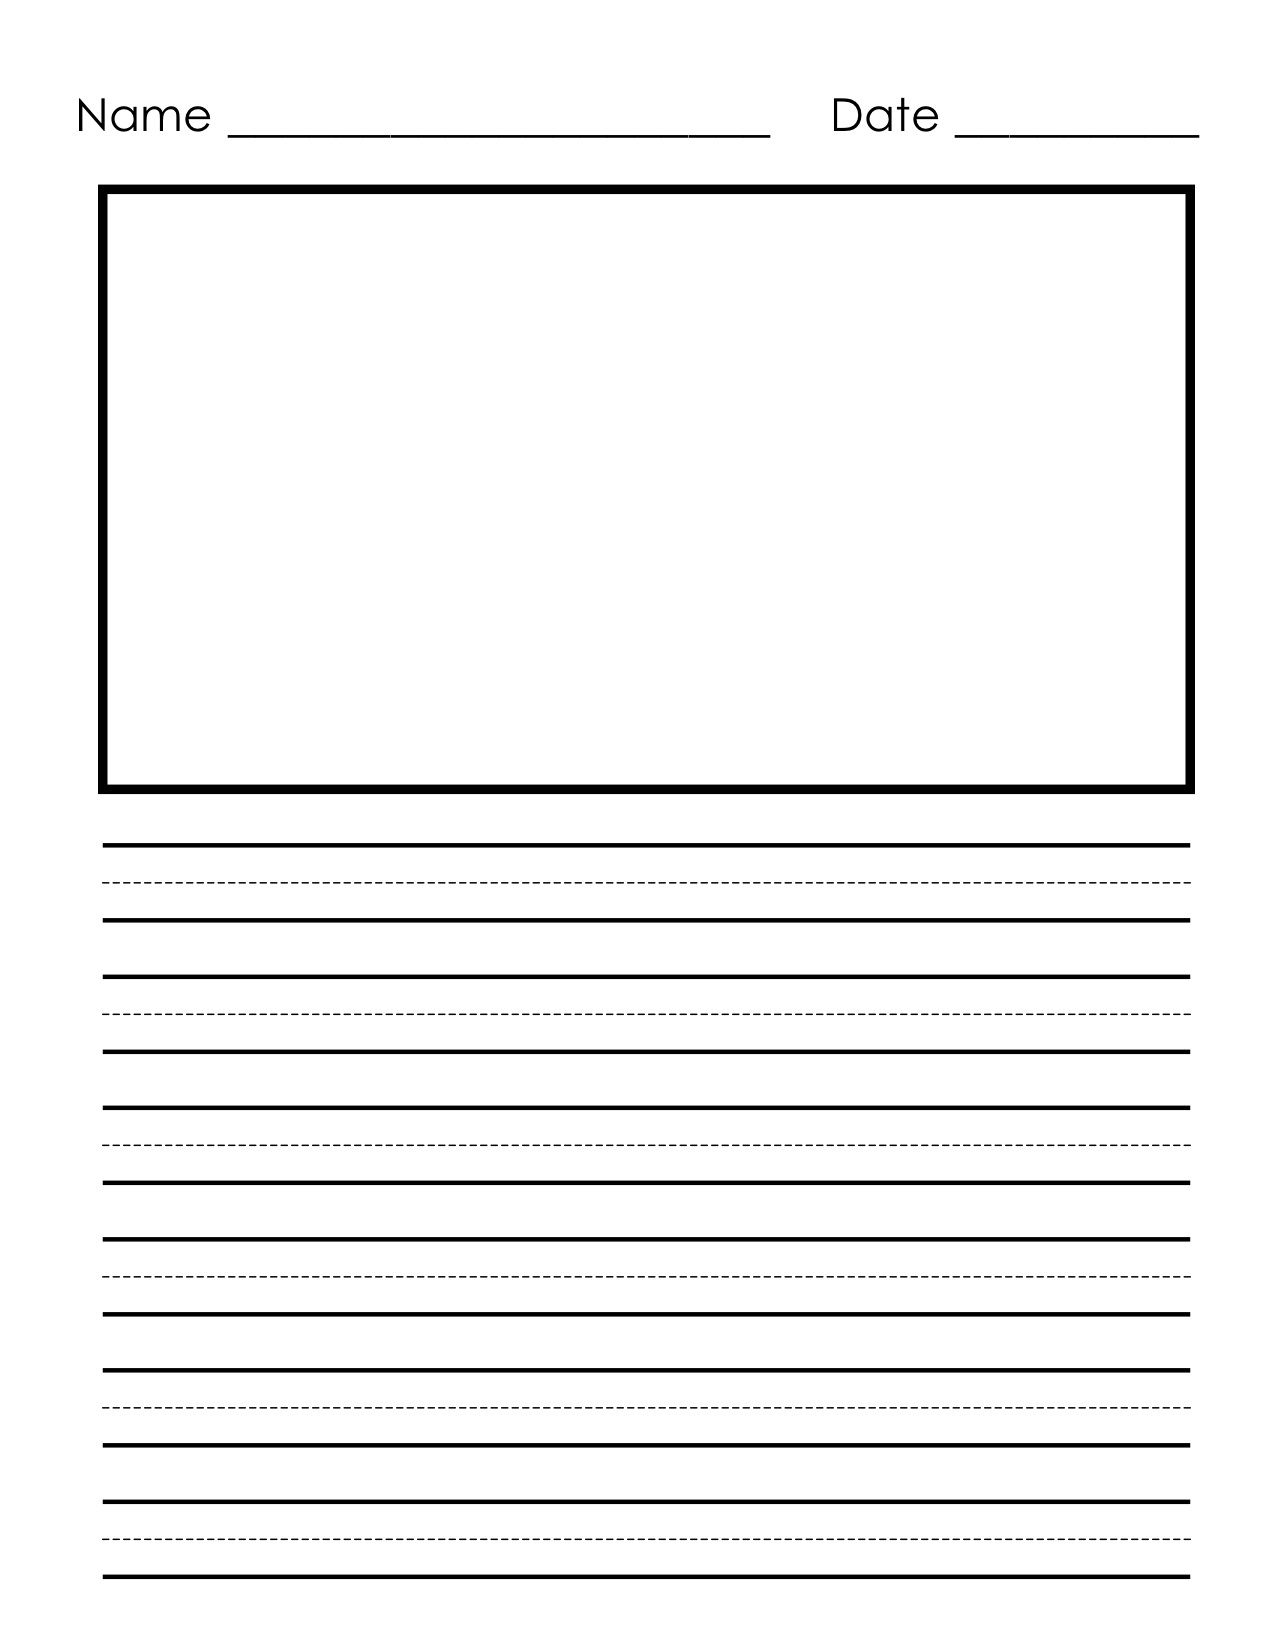 Pinheather Riddle On Home School Resources | Preschool Writing - Free Printable Kindergarten Lined Paper Template